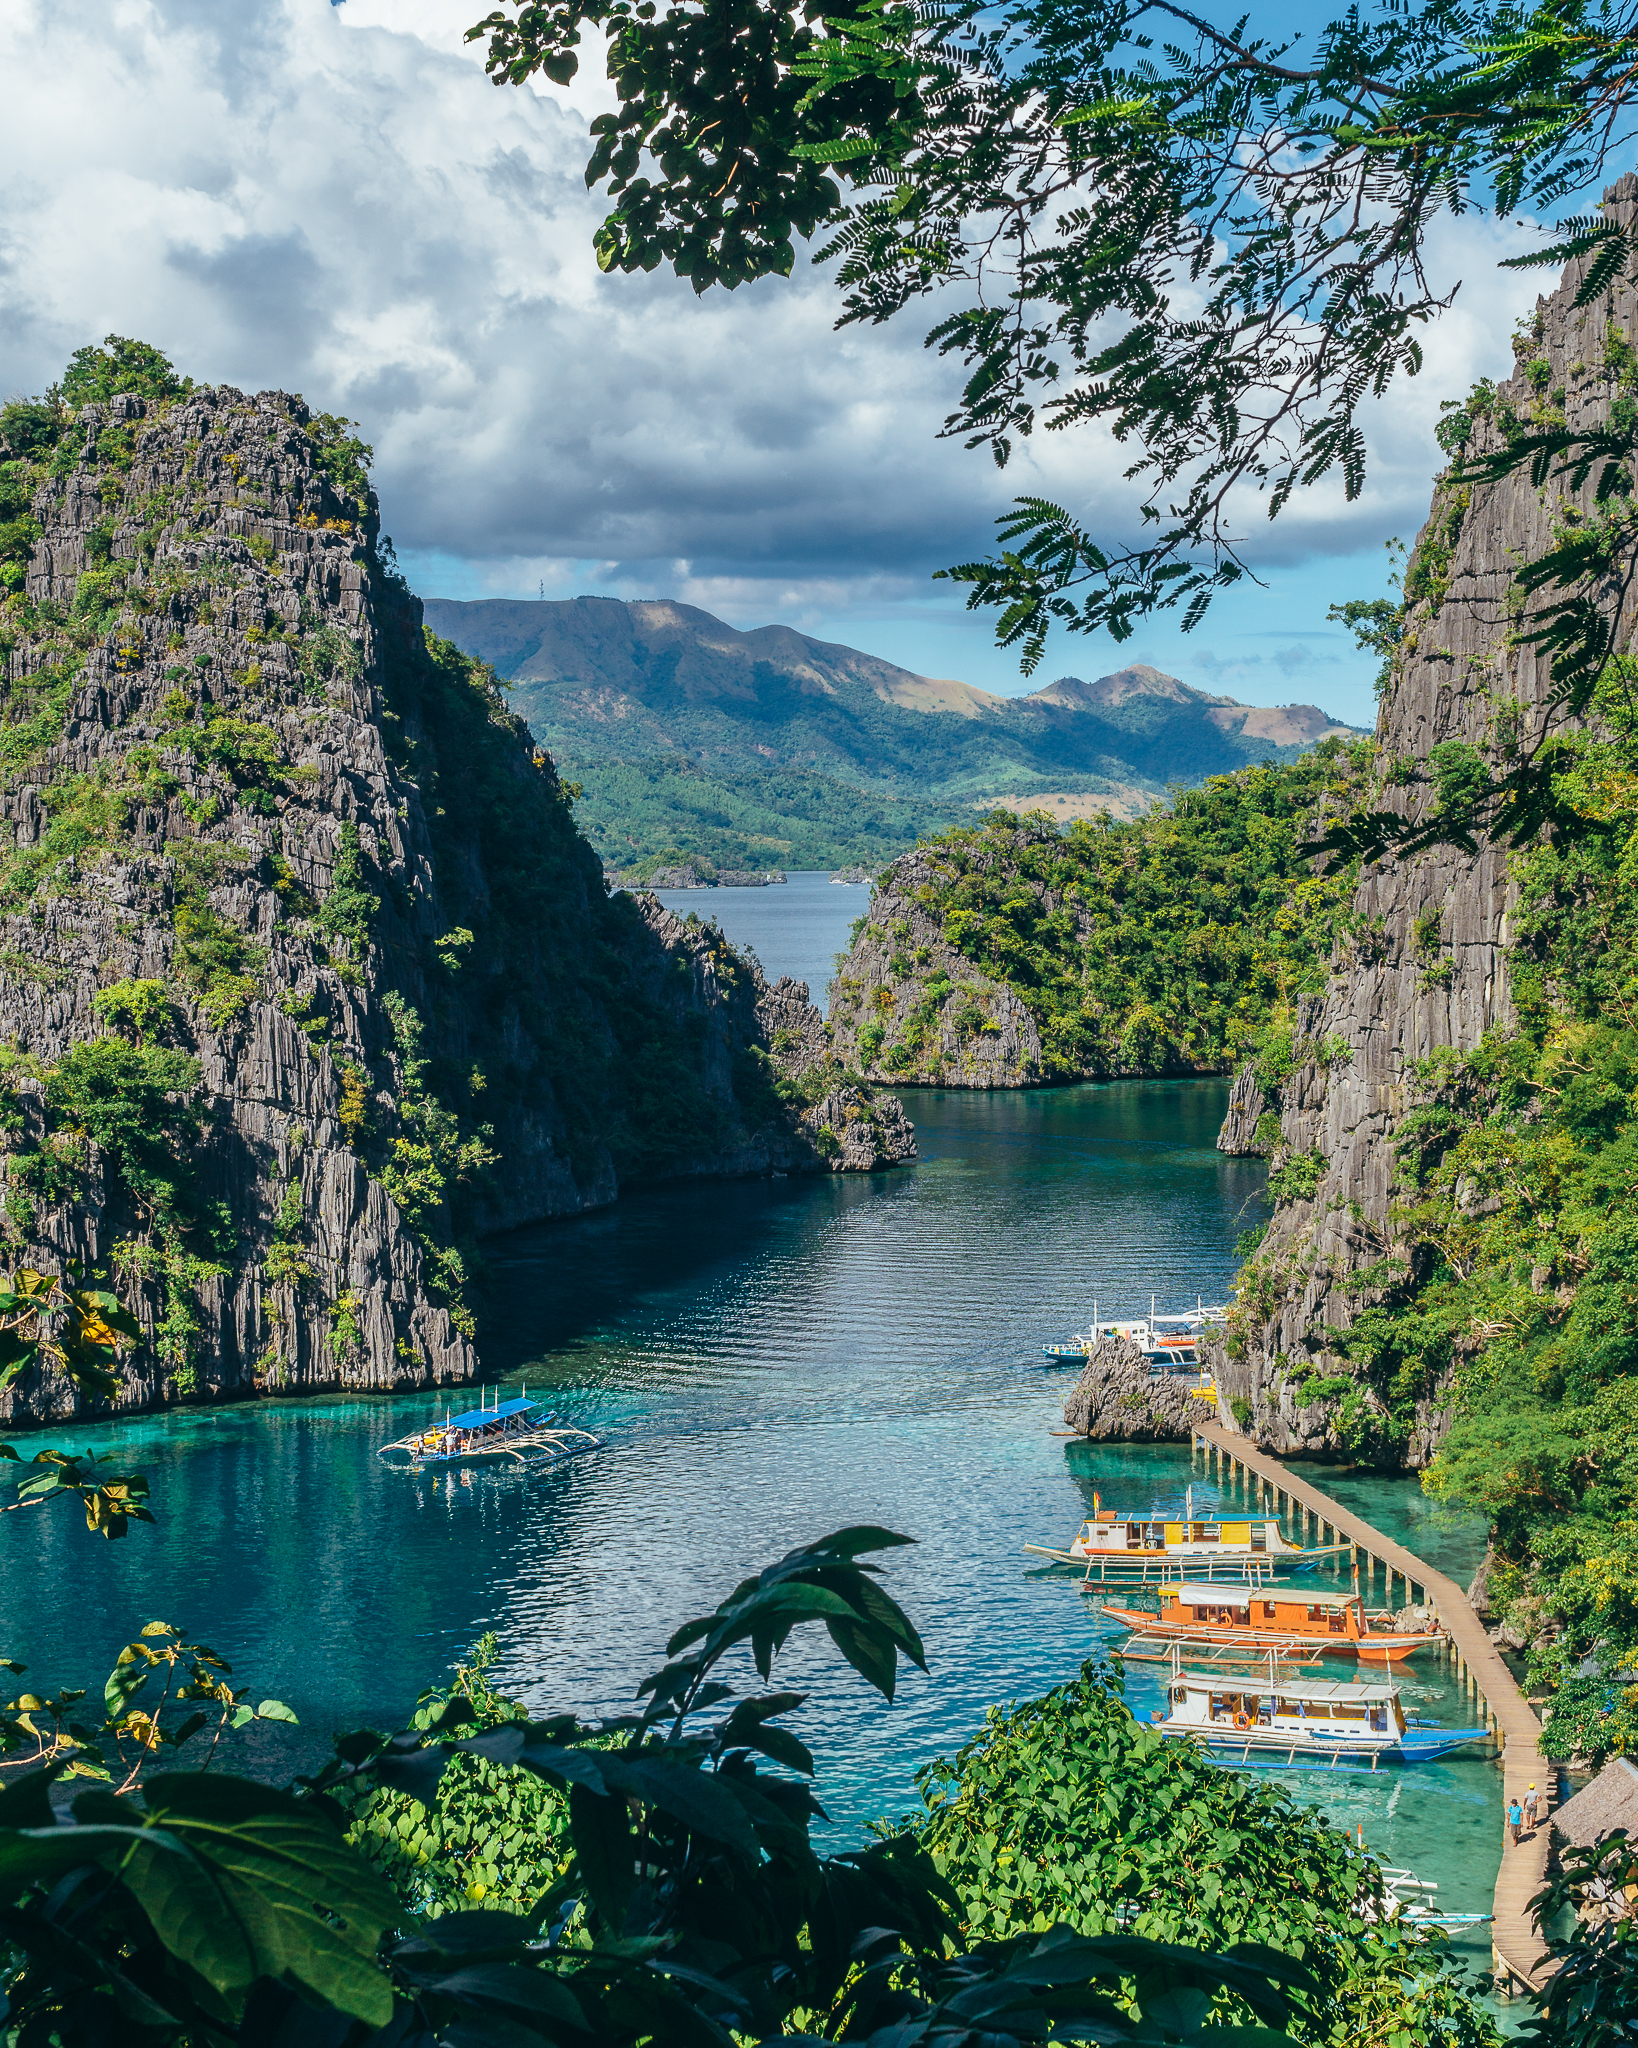 The classic Coron photo. For info on where to find this viewpoint, read on!